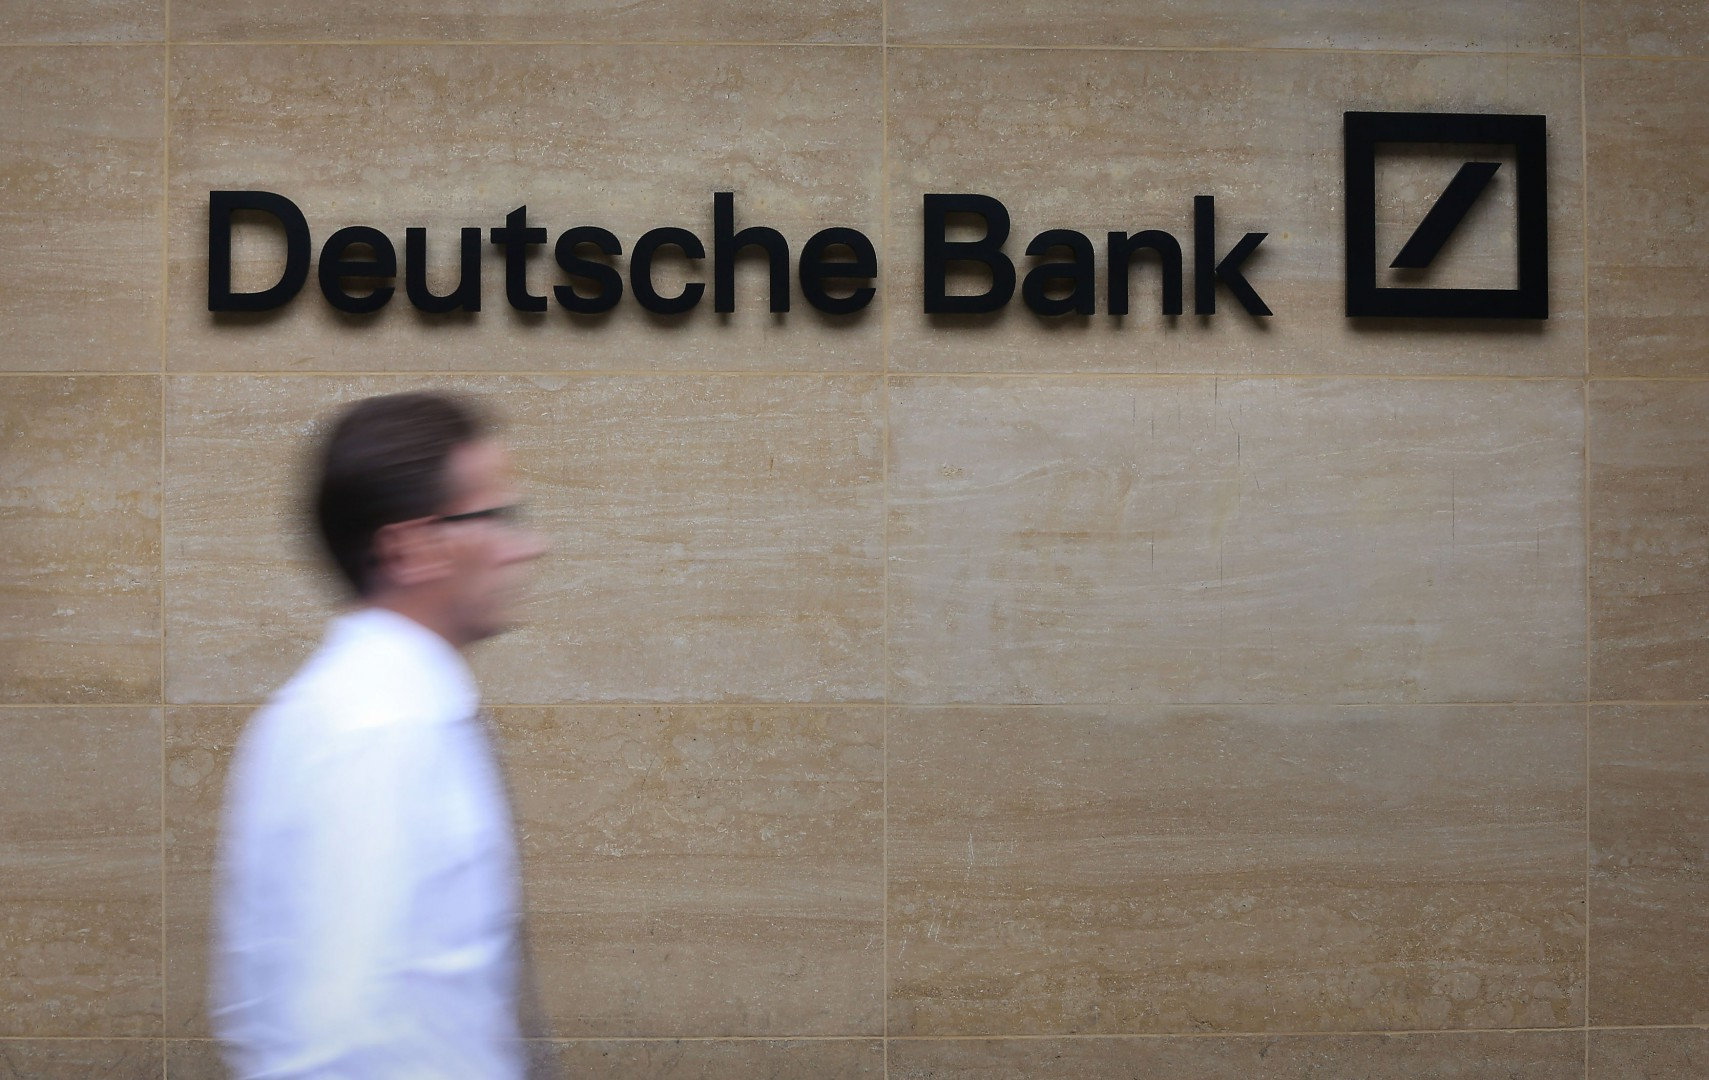 """File photo dated 26/09/16 of a Deutsche Bank office in London, as the bank has signed a 25-year lease for its new City headquarters despite warning that it may move staff and the """"vast majority"""" of its assets to Frankfurt in light of Brexit.  PRESS ASSOCIATION Photo. Issue date: Tuesday August 1, 2017. See PA story CITY DeutscheBank. Photo credit should read: Philip Toscano/PA Wire"""